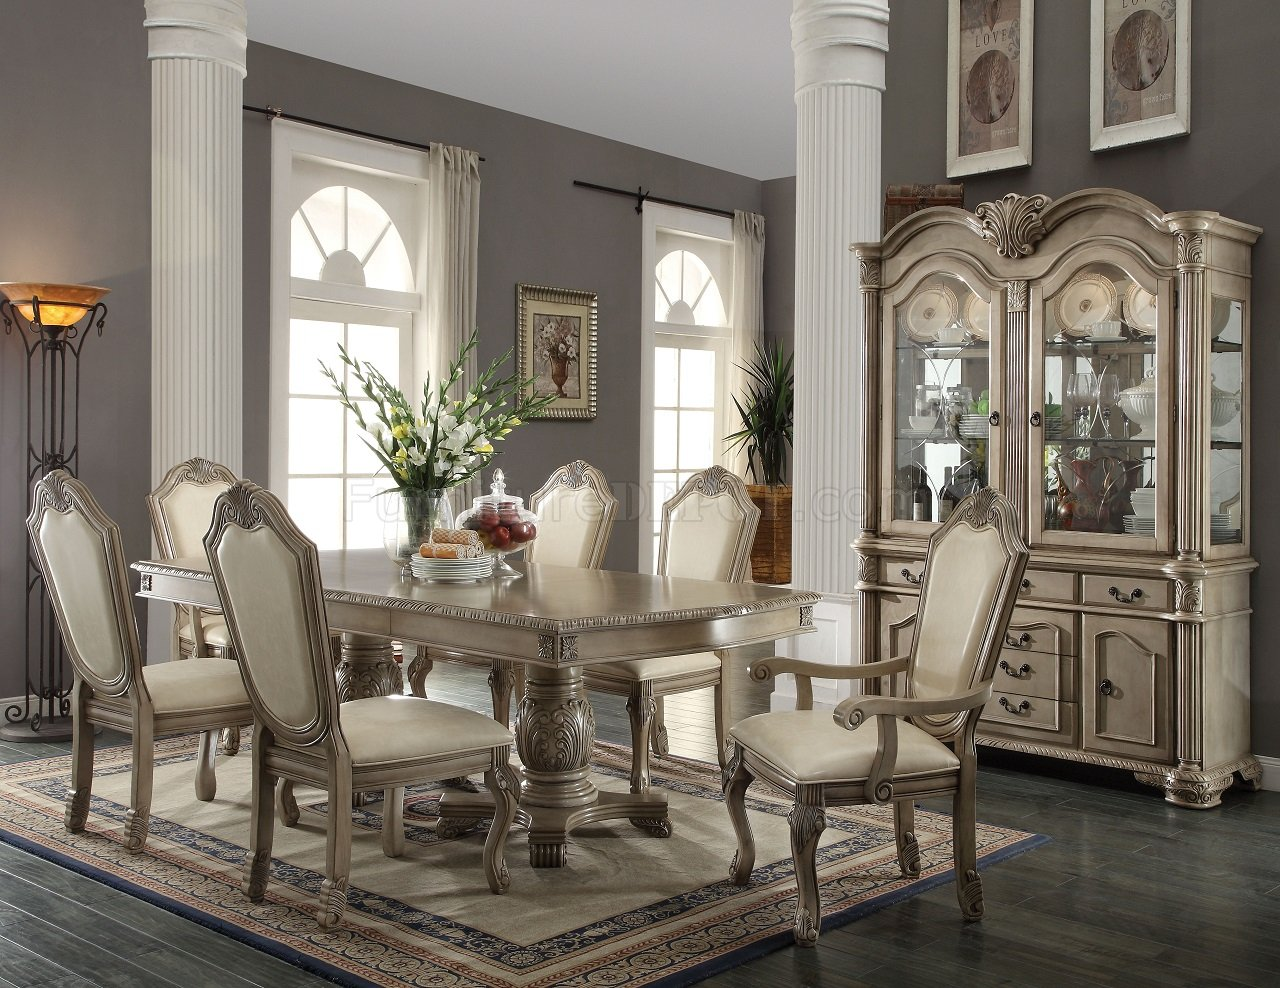 formal dining room sets chateau de ville 64065 dining table by acme w / options ZEVAWXD